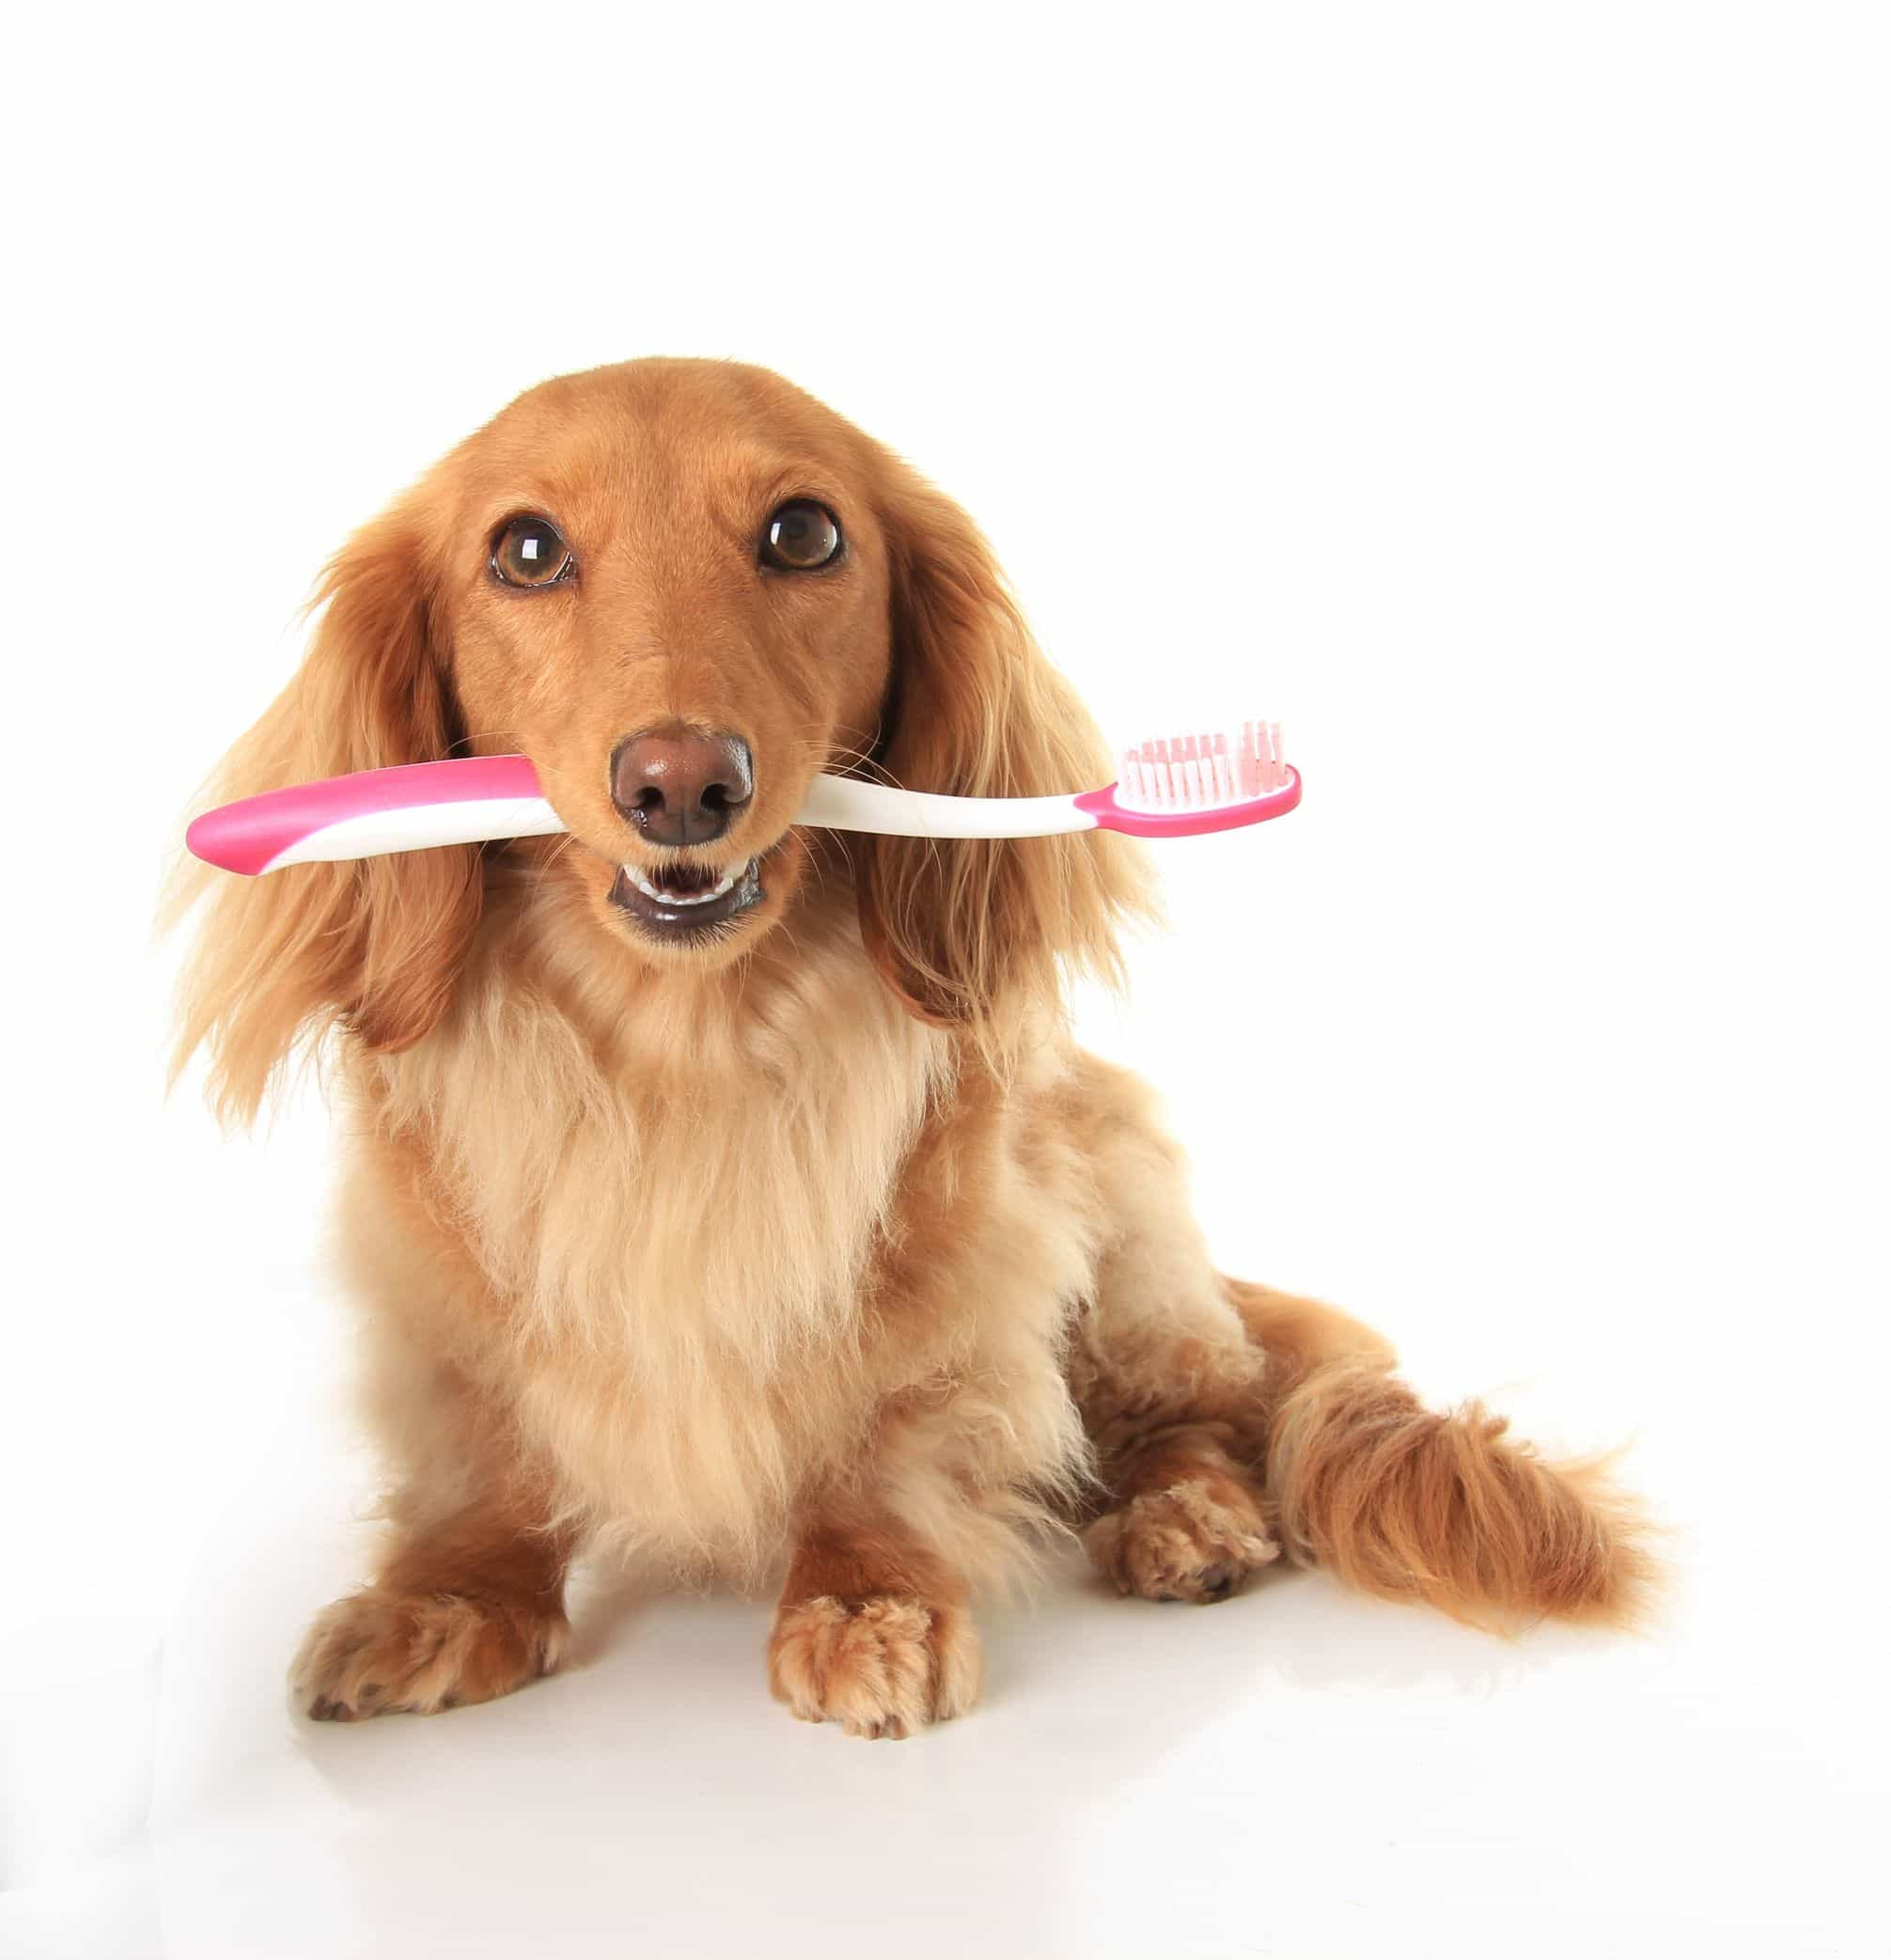 14815590 - dachshund dog with a toothbrush